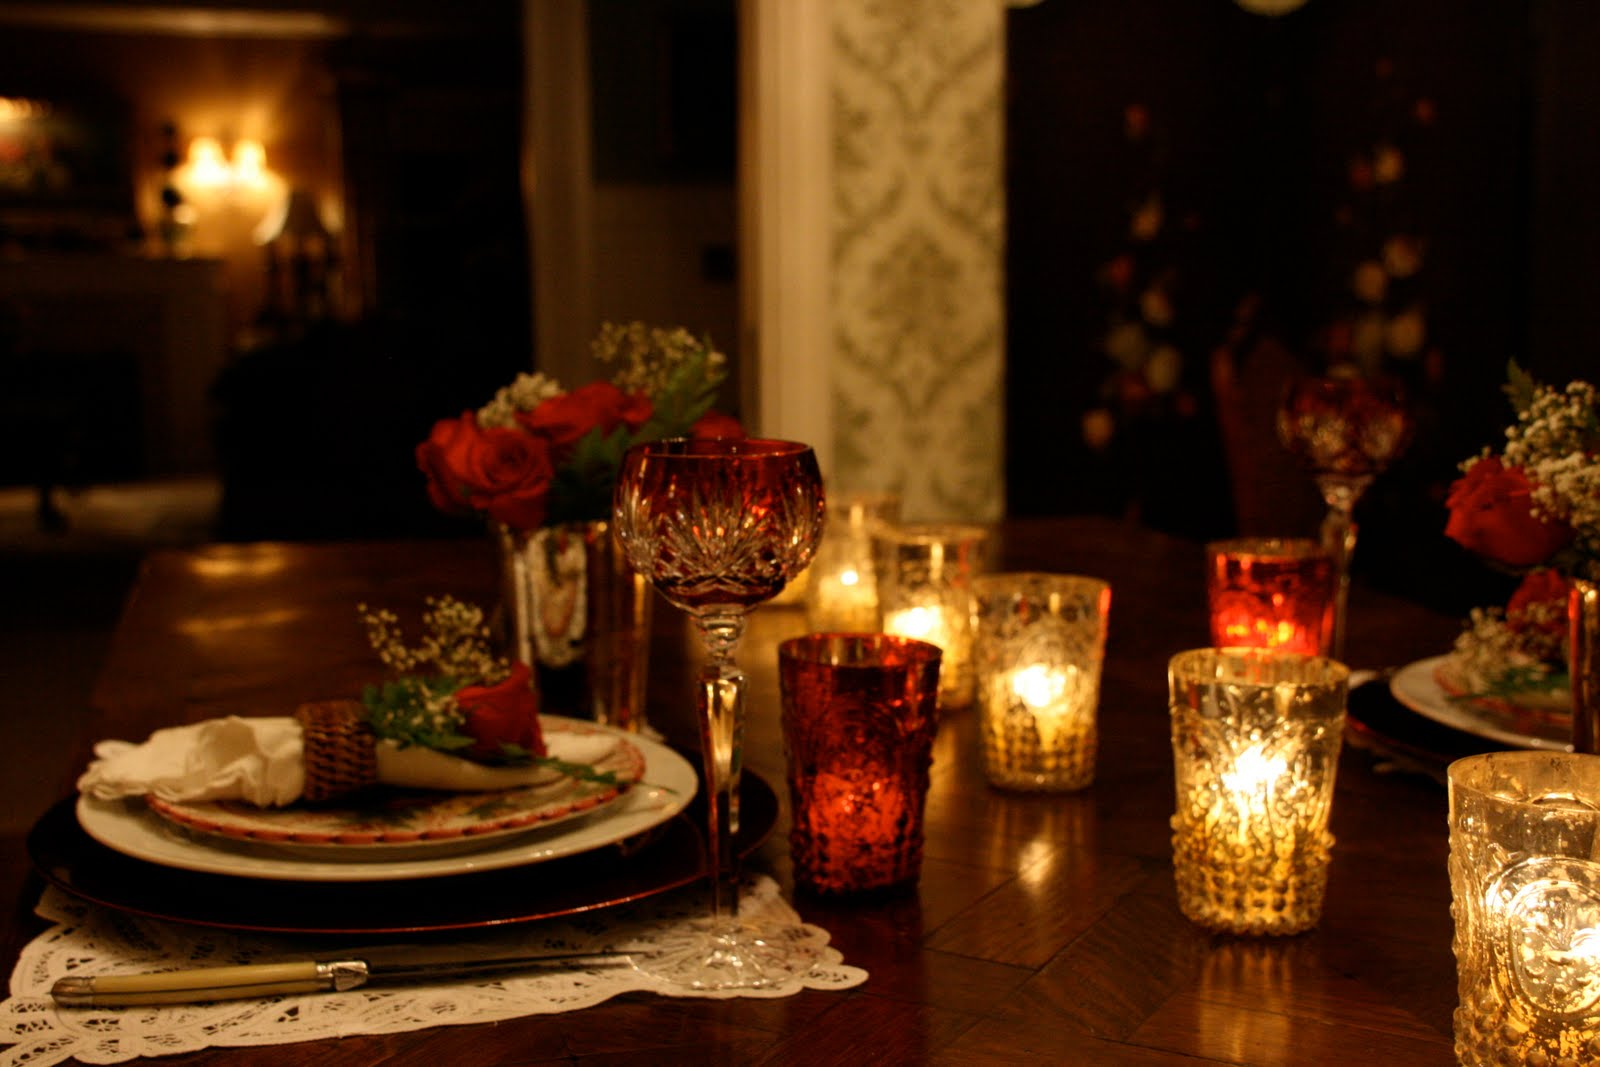 Candle light dinner table for two - In Your Smart Home